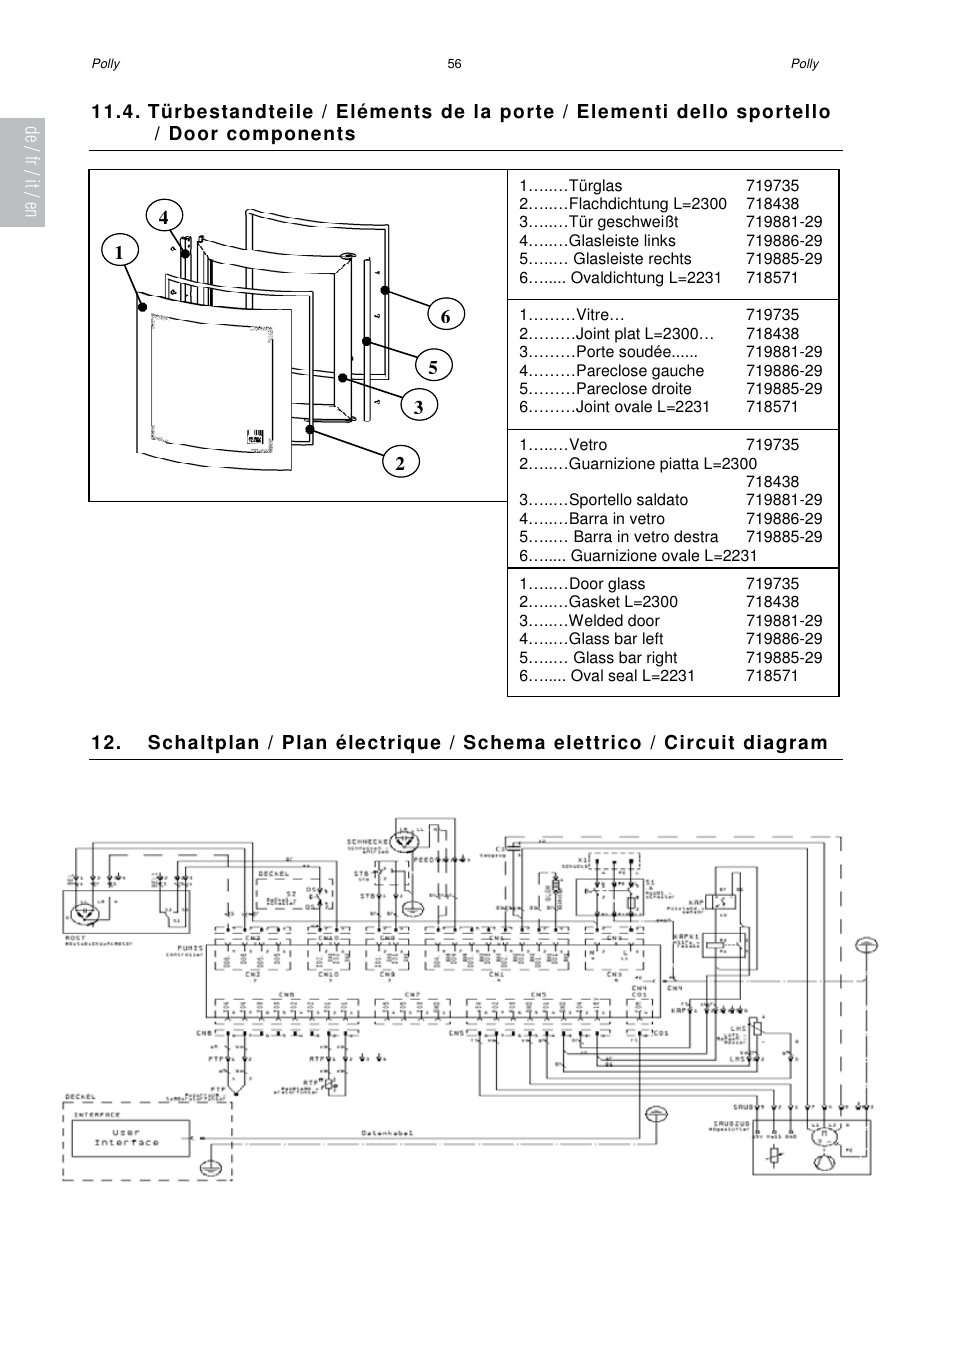 Austroflamm Polly User Manual | Page 58 / 68